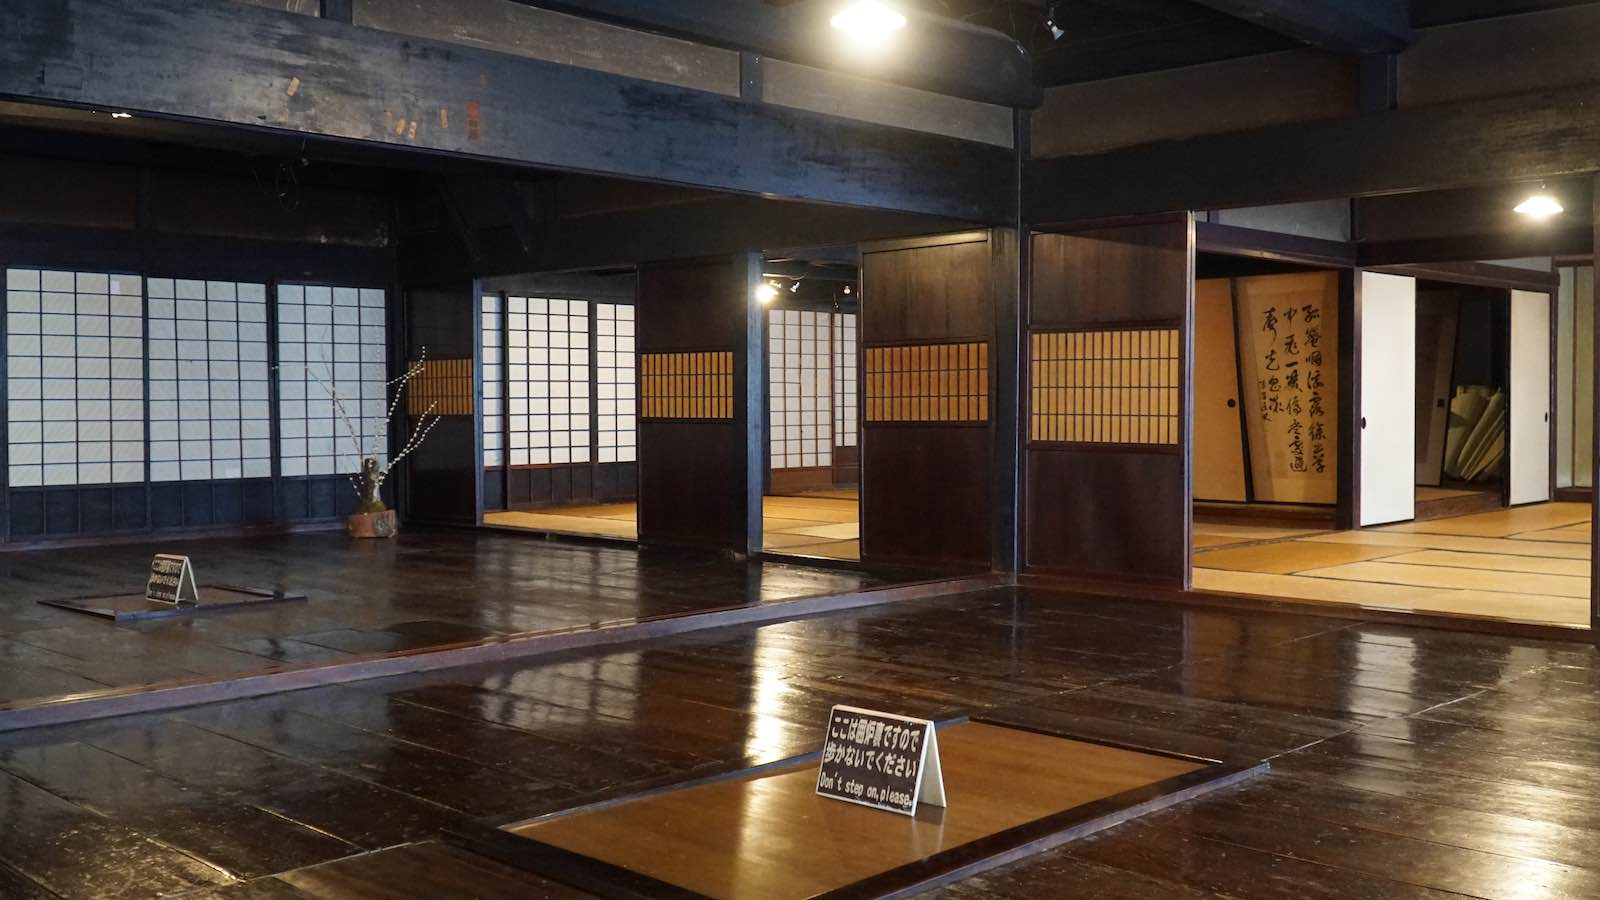 The hostel I stayed at, which was a very traditional Japanese home, was for whatever reason blasting American country music (the kind where they're singing about their trucks and not the Taylor Swift kind) in the living room. I didn't take a photo of place, but it looked like this.